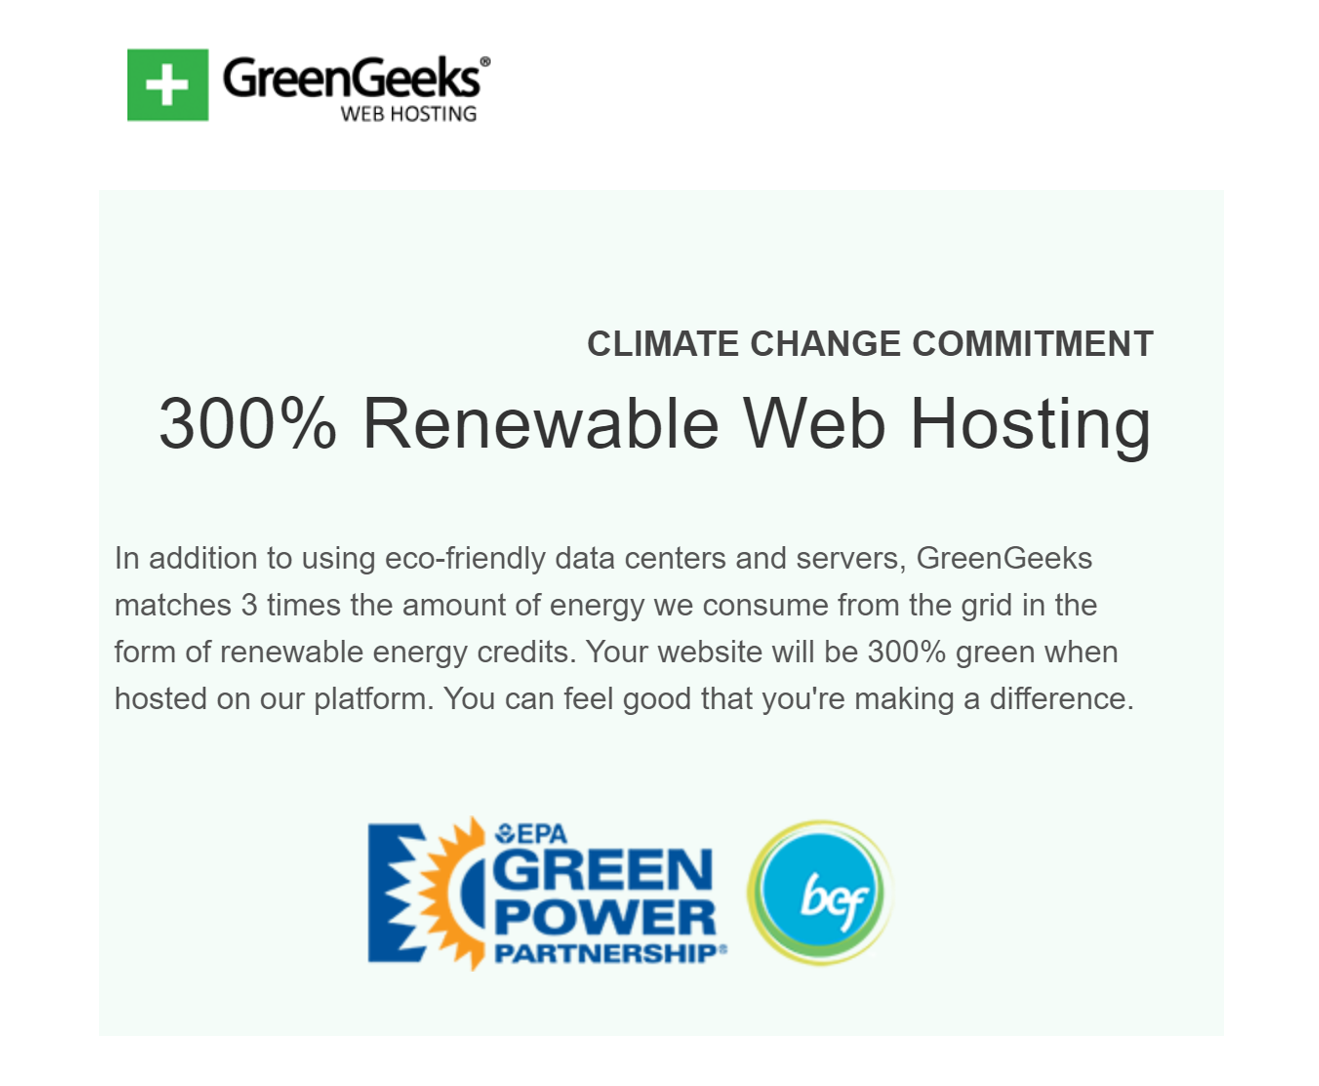 GreenGeeks - Green Web Hosting - GreenGeeks uses eco-friendly data centers and servers, plus they match 3 times the amount of energy consumed making it a great option for several green business ideas